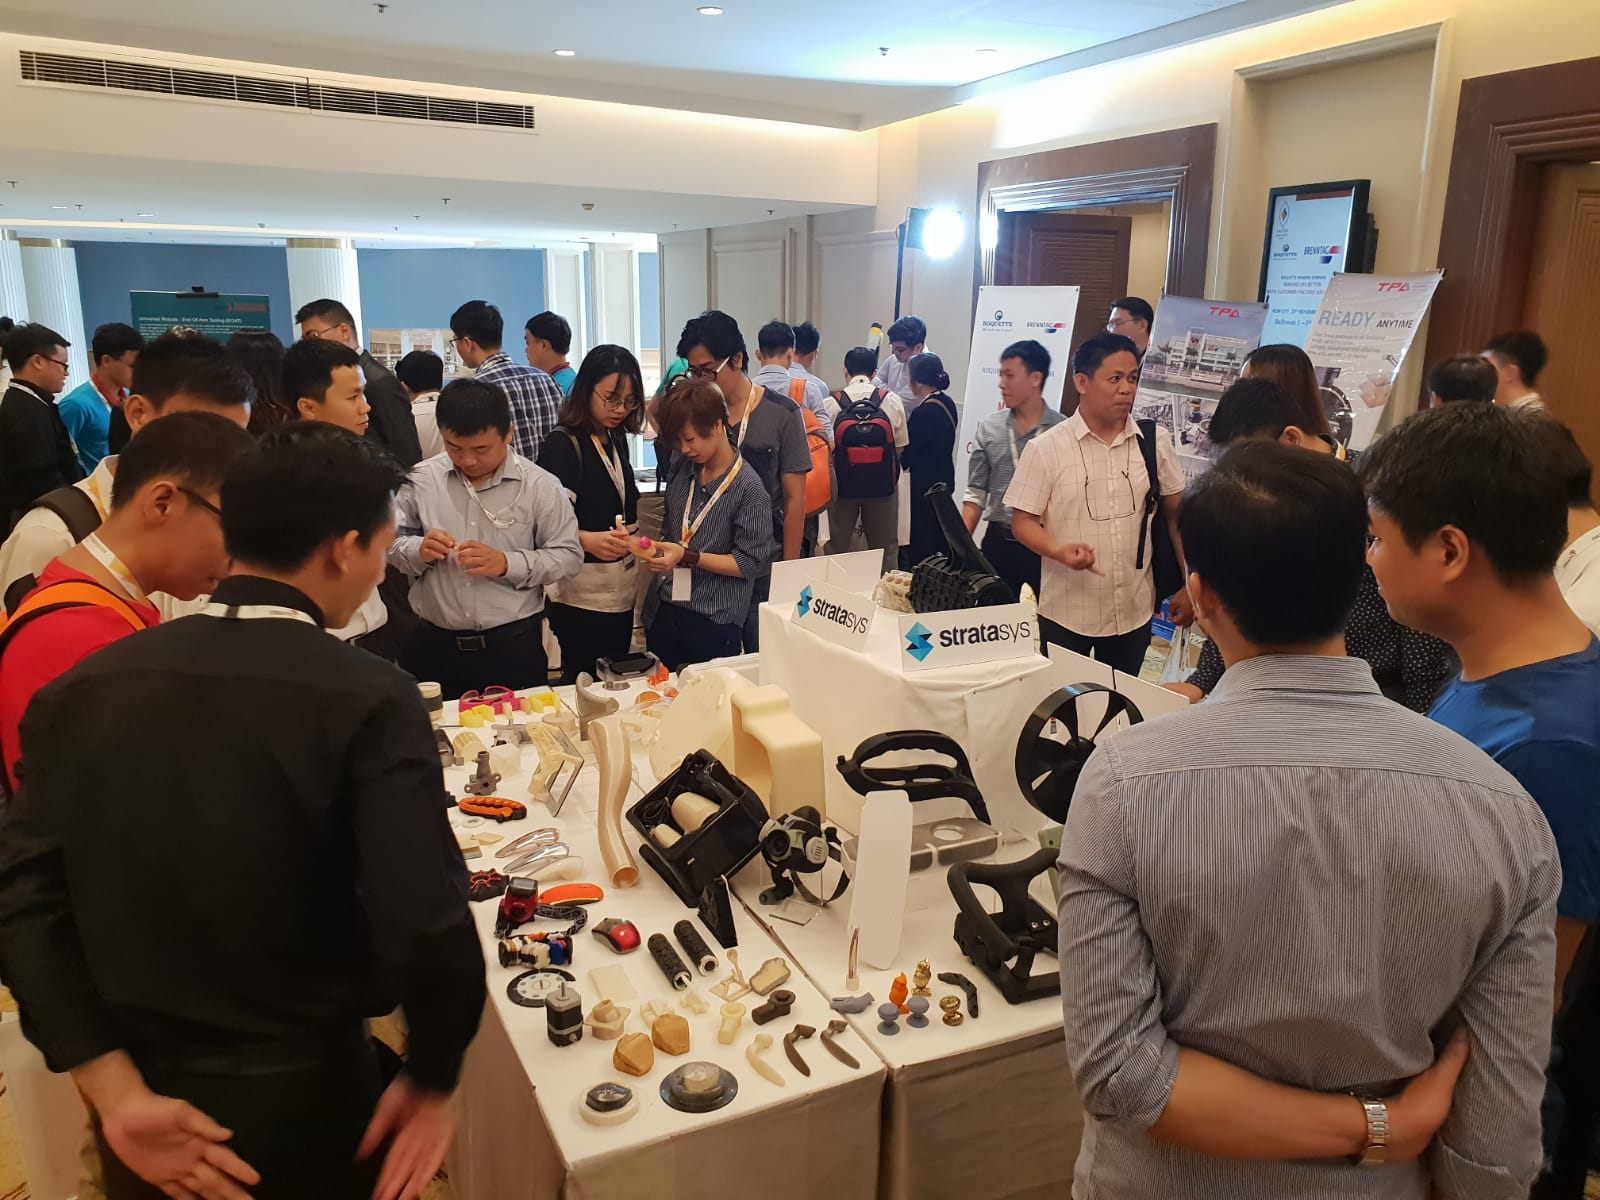 Attendees viewing 3D printed samples